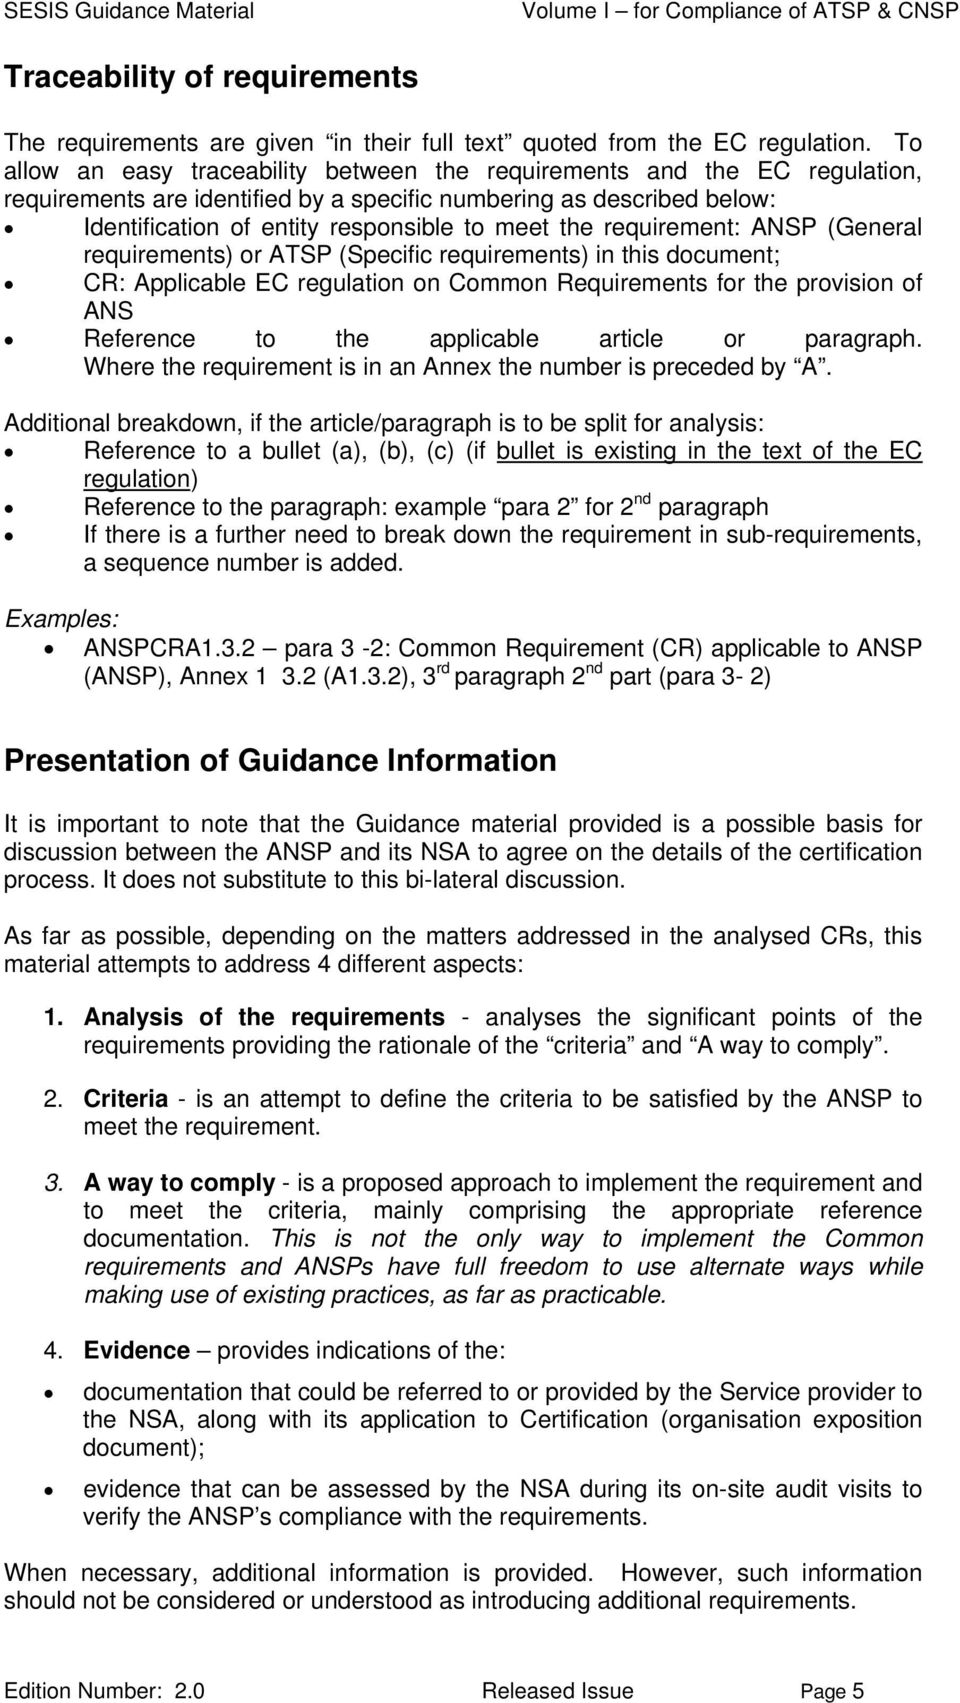 requirement: ANSP (General requirements) or ATSP (Specific requirements) in this document; CR: Applicable EC regulation on Common Requirements for the provision of ANS Reference to the applicable